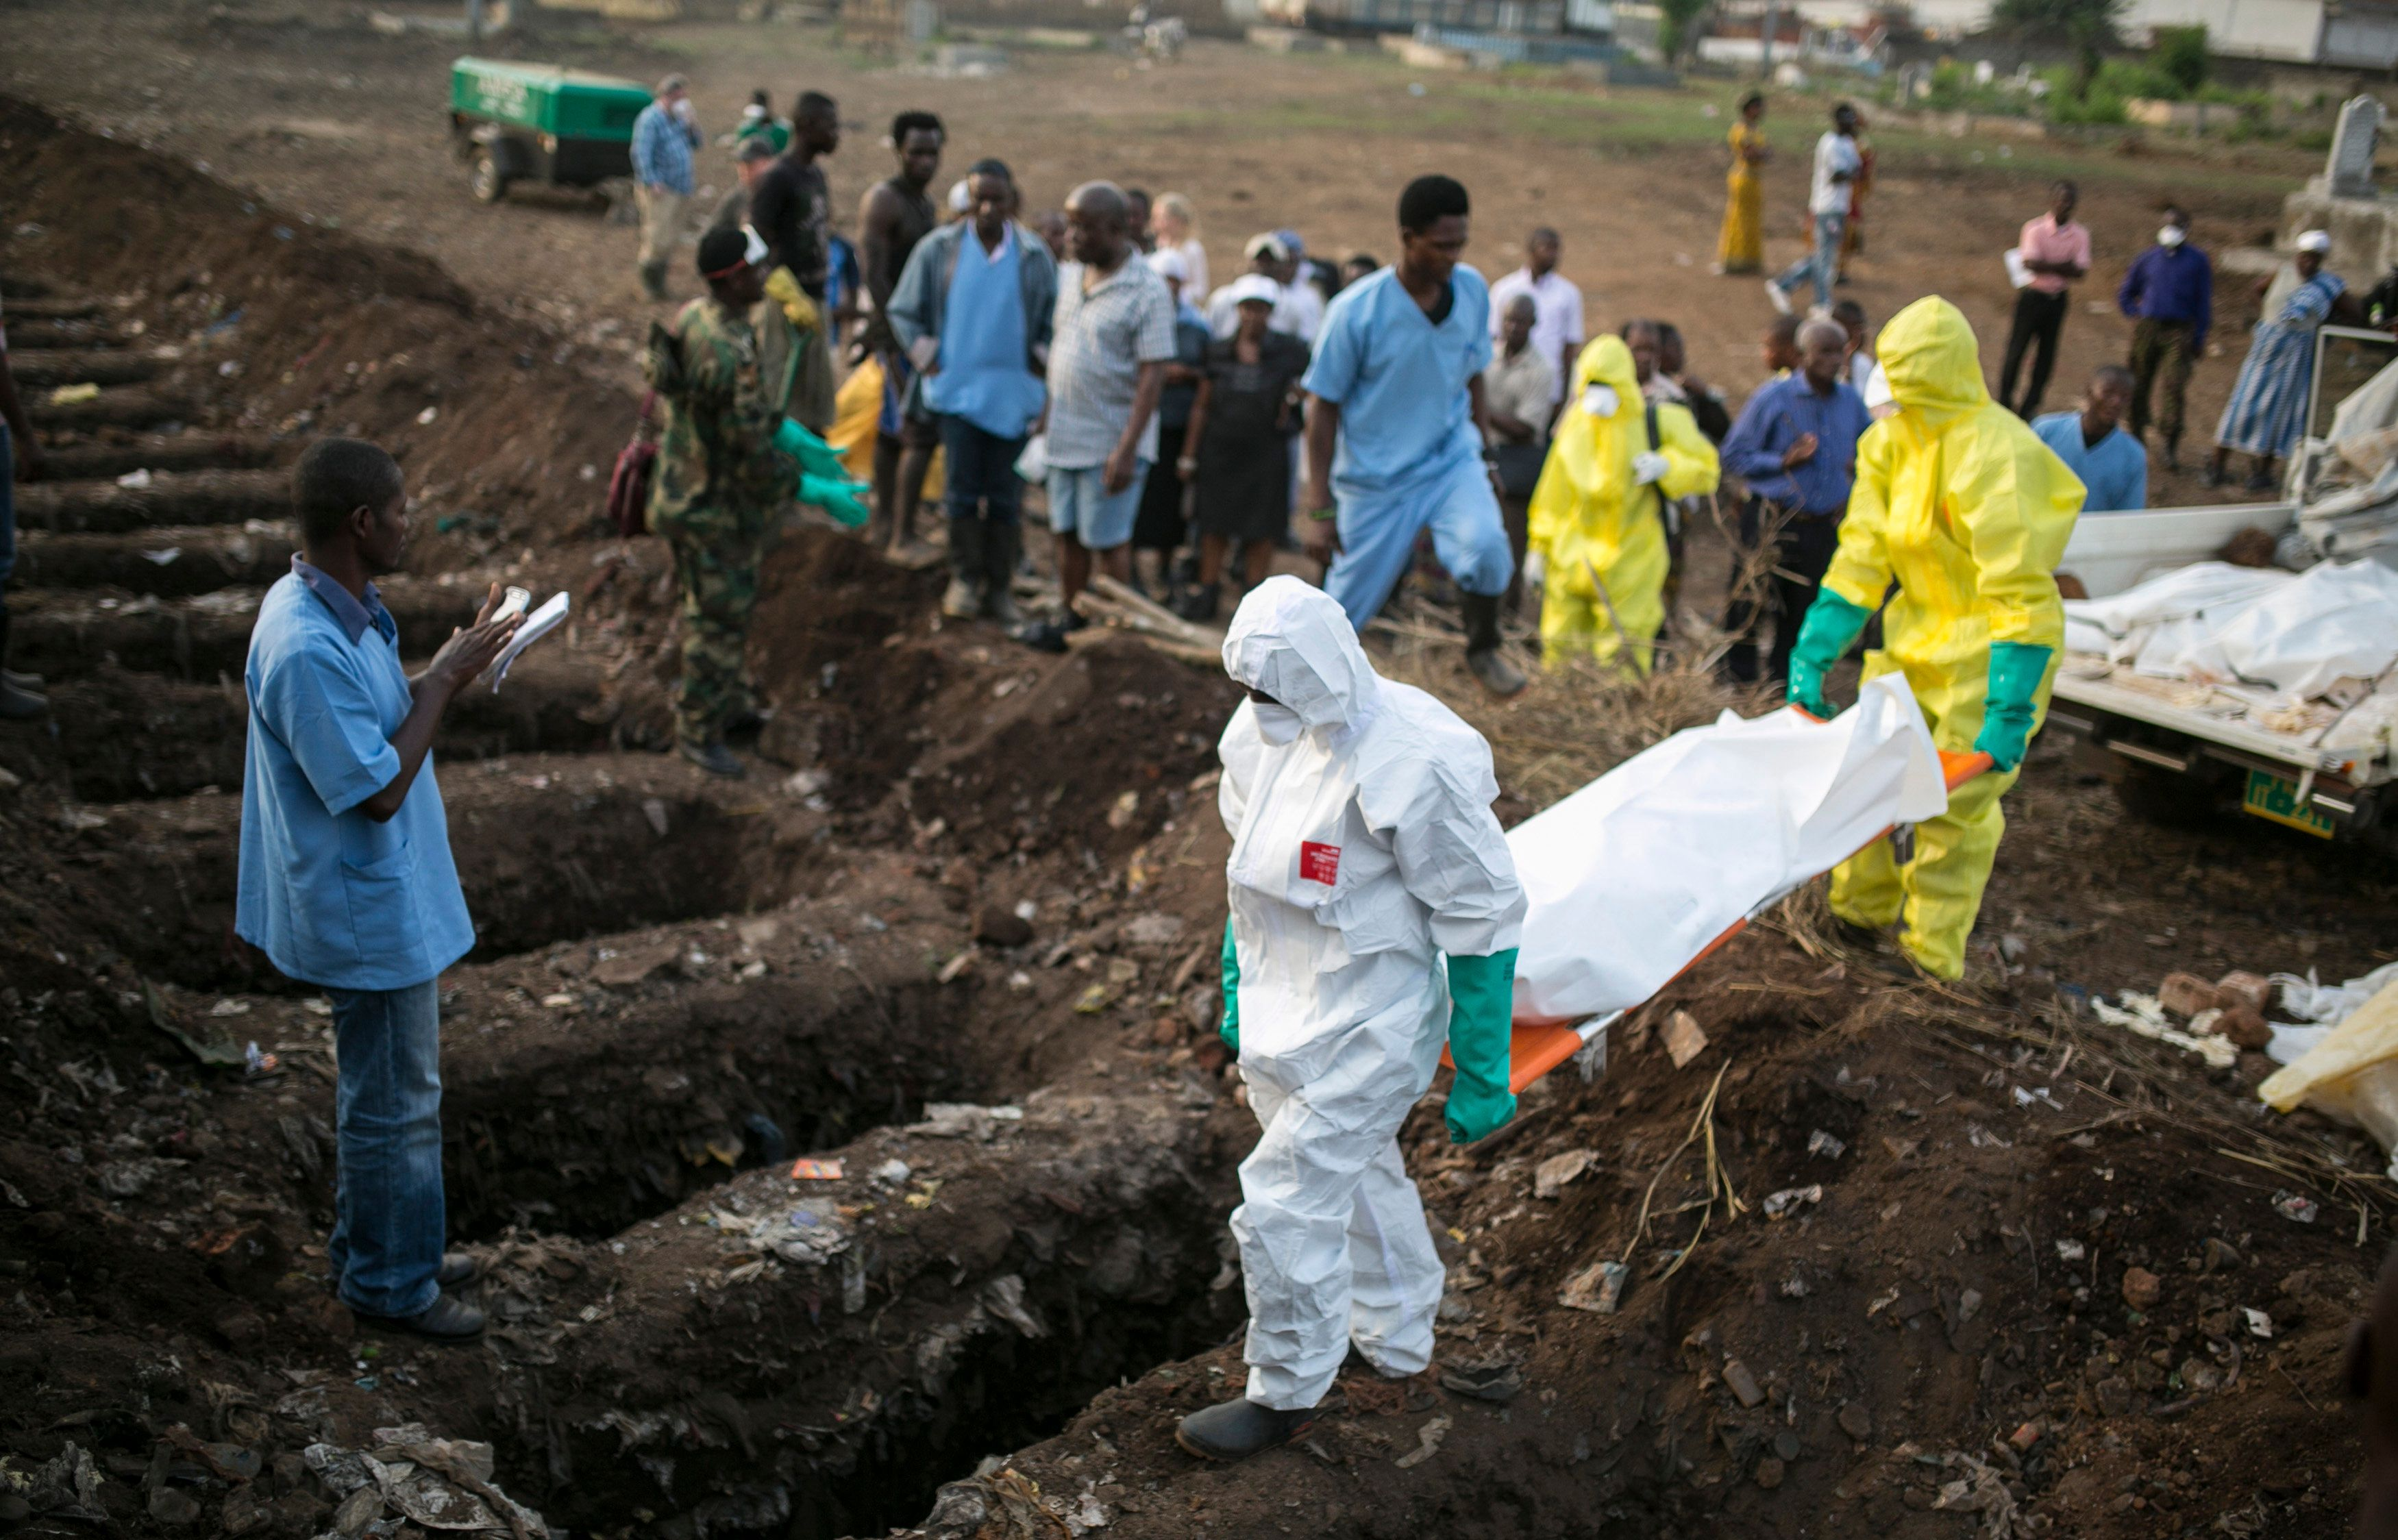 Health workers carry the body of an Ebola victim for burial at a cemetery in Freetown, December 17, 2014.  The death toll in the Ebola epidemic has risen to 6,915 out of 18,603 cases as of Dec. 14, the World Health Organization (WHO) said on Wednesday. There are signs that the increase in incidence in Sierra Leone has slowed, although 327 new cases were confirmed there in the past week, including 125 in the capital Freetown, the WHO said in its latest update. REUTERS/Baz Ratner (SIERRA LEONE - Tags: DISASTER HEALTH)